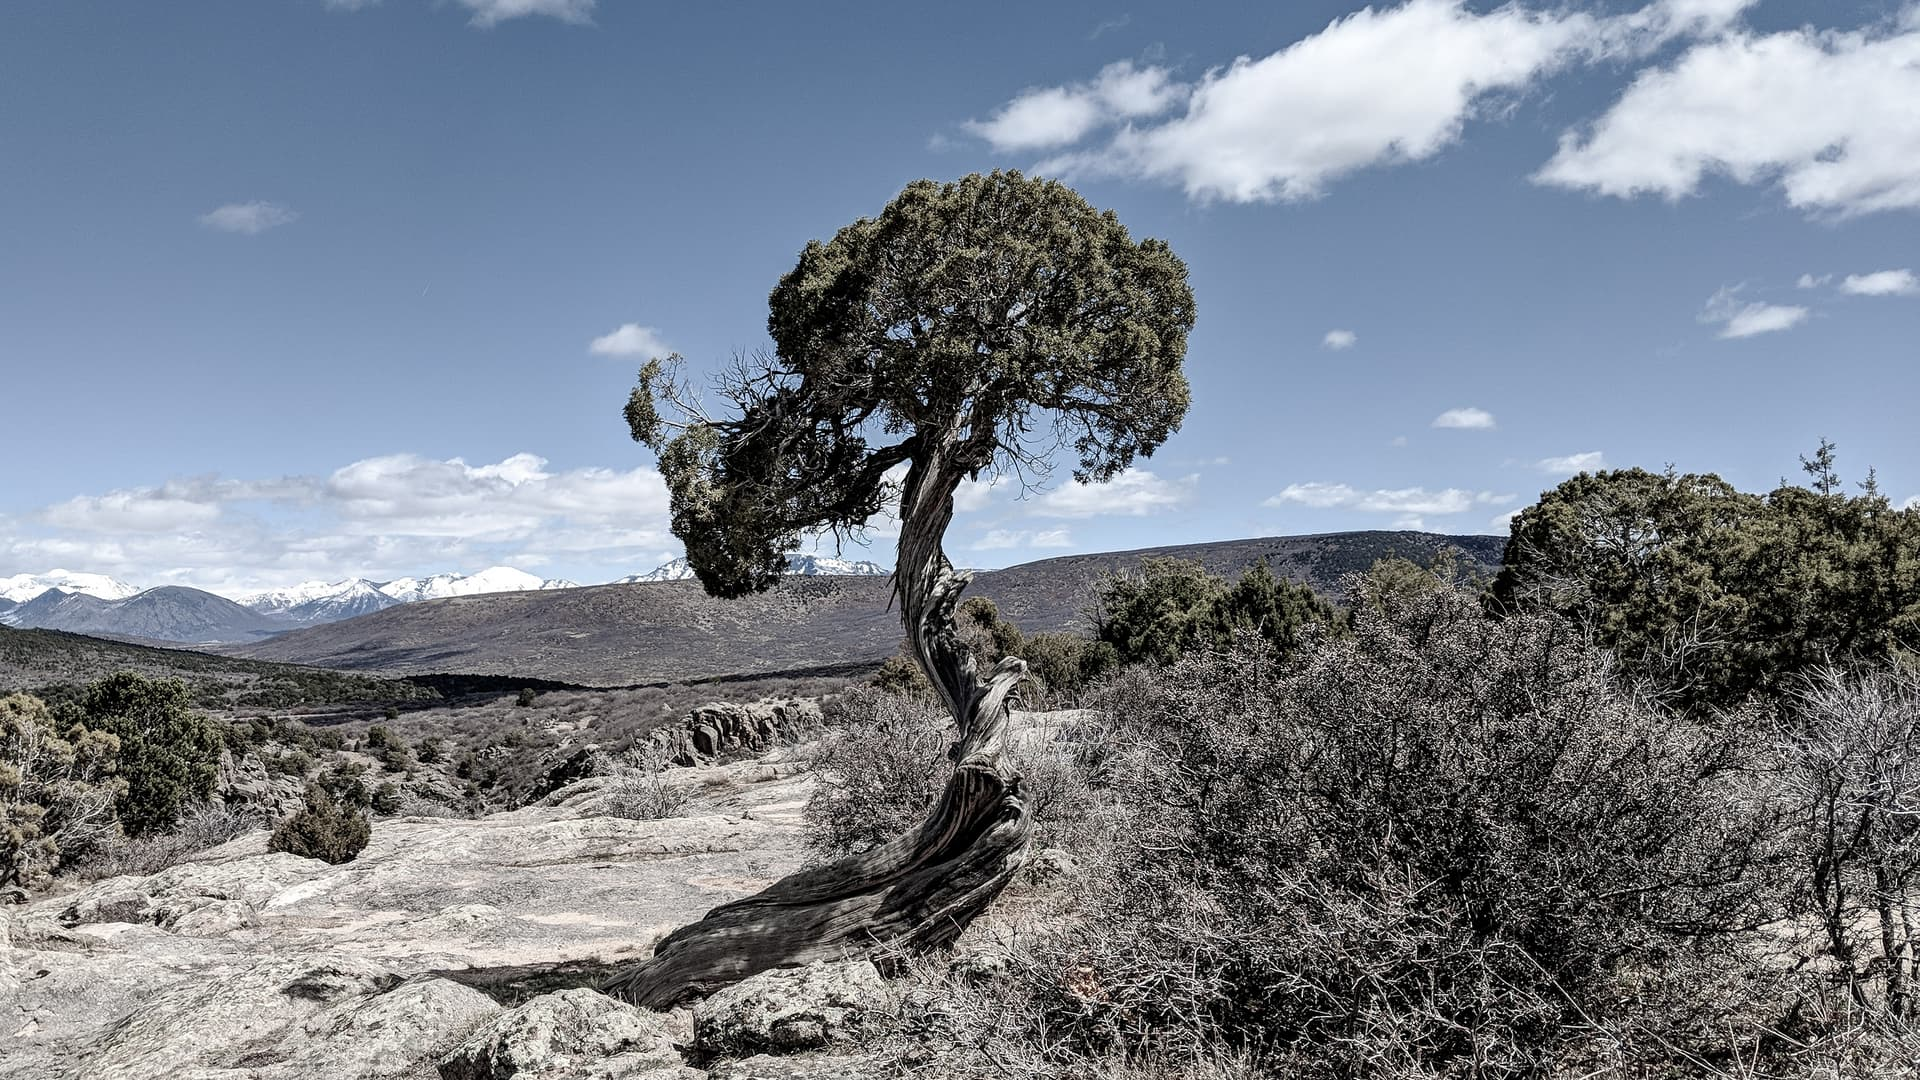 A gnarled juniper in the high mountain desert surrounding the Black Canyon of the Gunnison. The tree has grown in a distinctive spiral shape, and has a thick hemispherical crown.